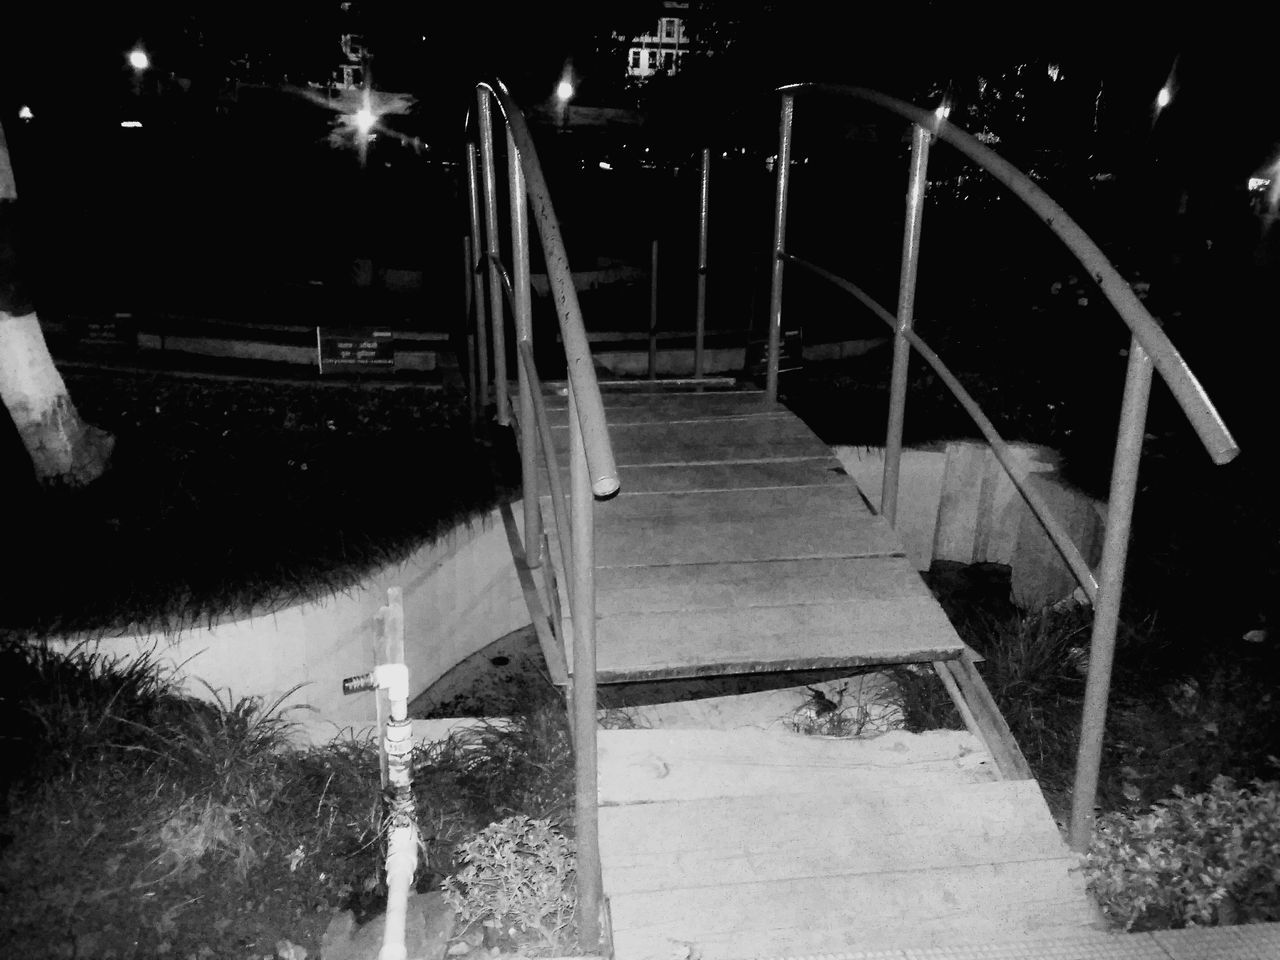 Outdoors No People Night Night Photography Mobile Photography Park Bridge - Man Made Structure Close-up Light And Shadow